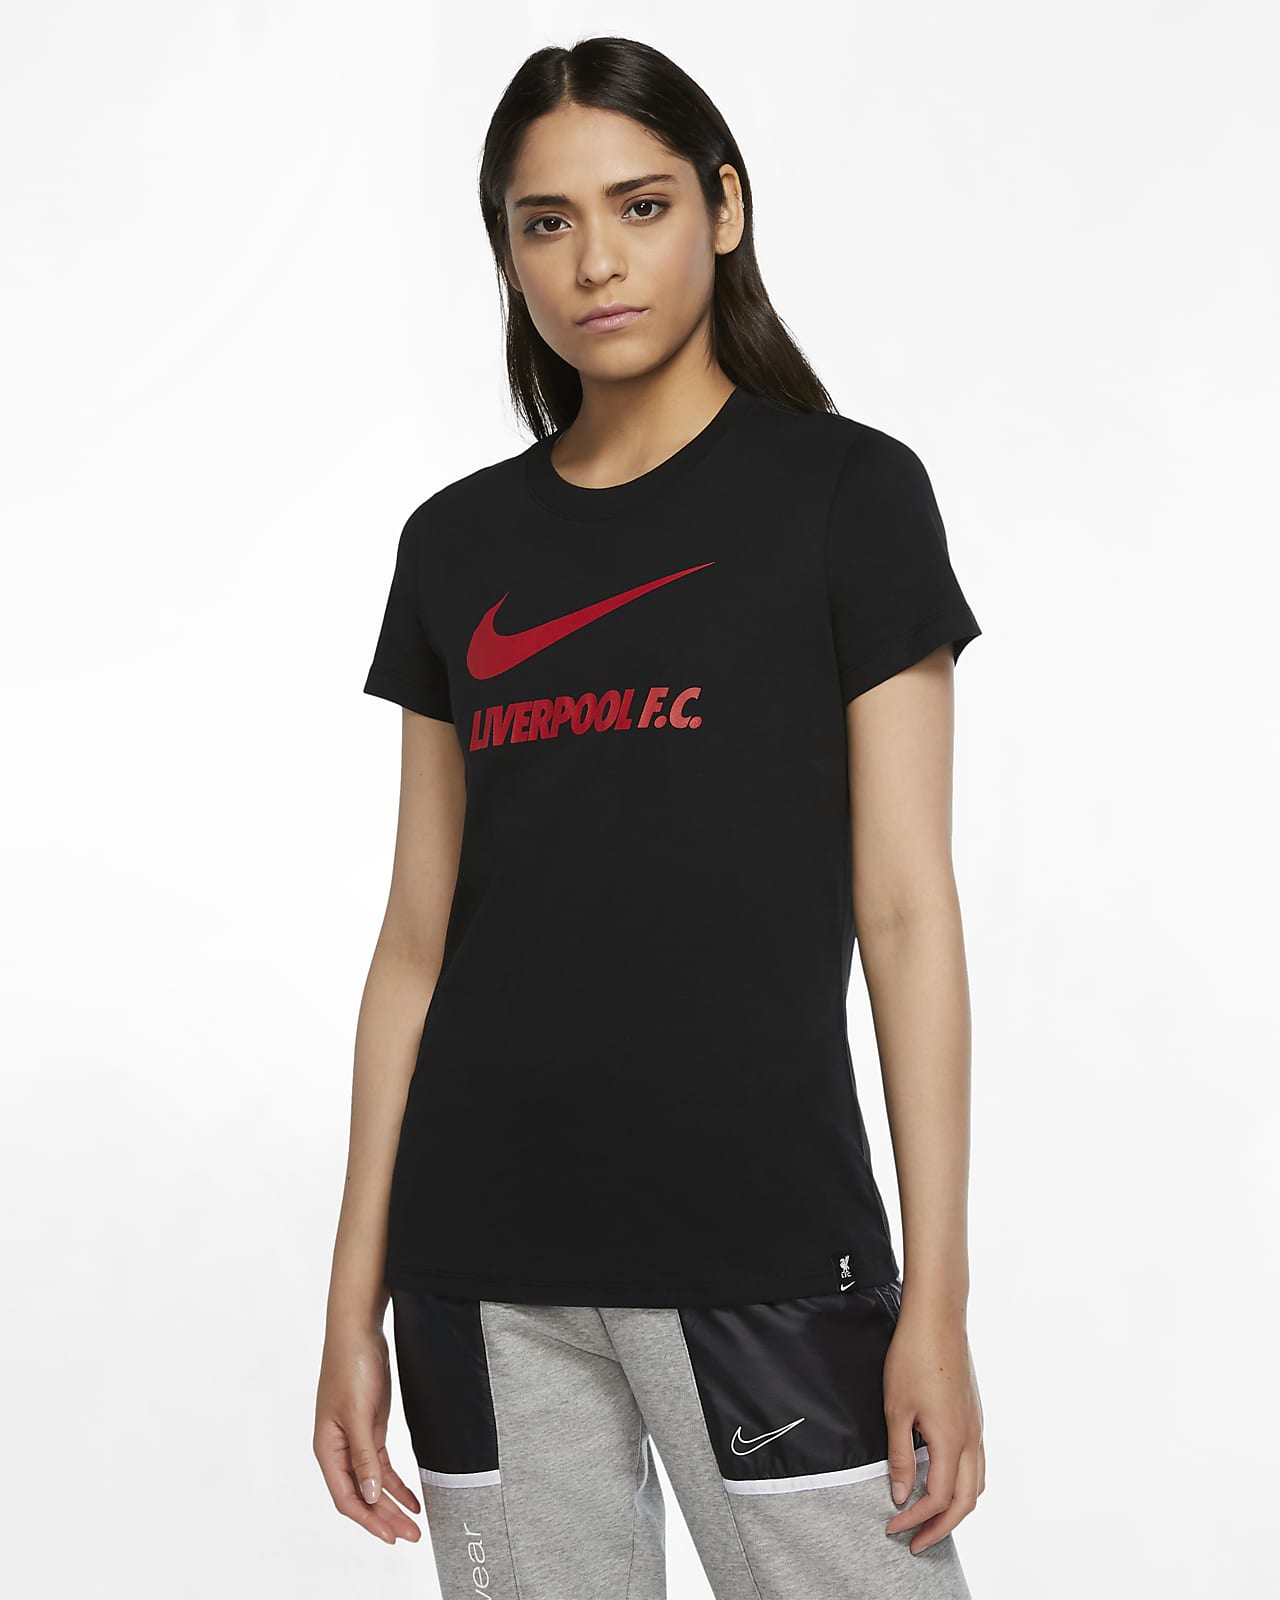 Liverpool F.C. Women's Football T-Shirt